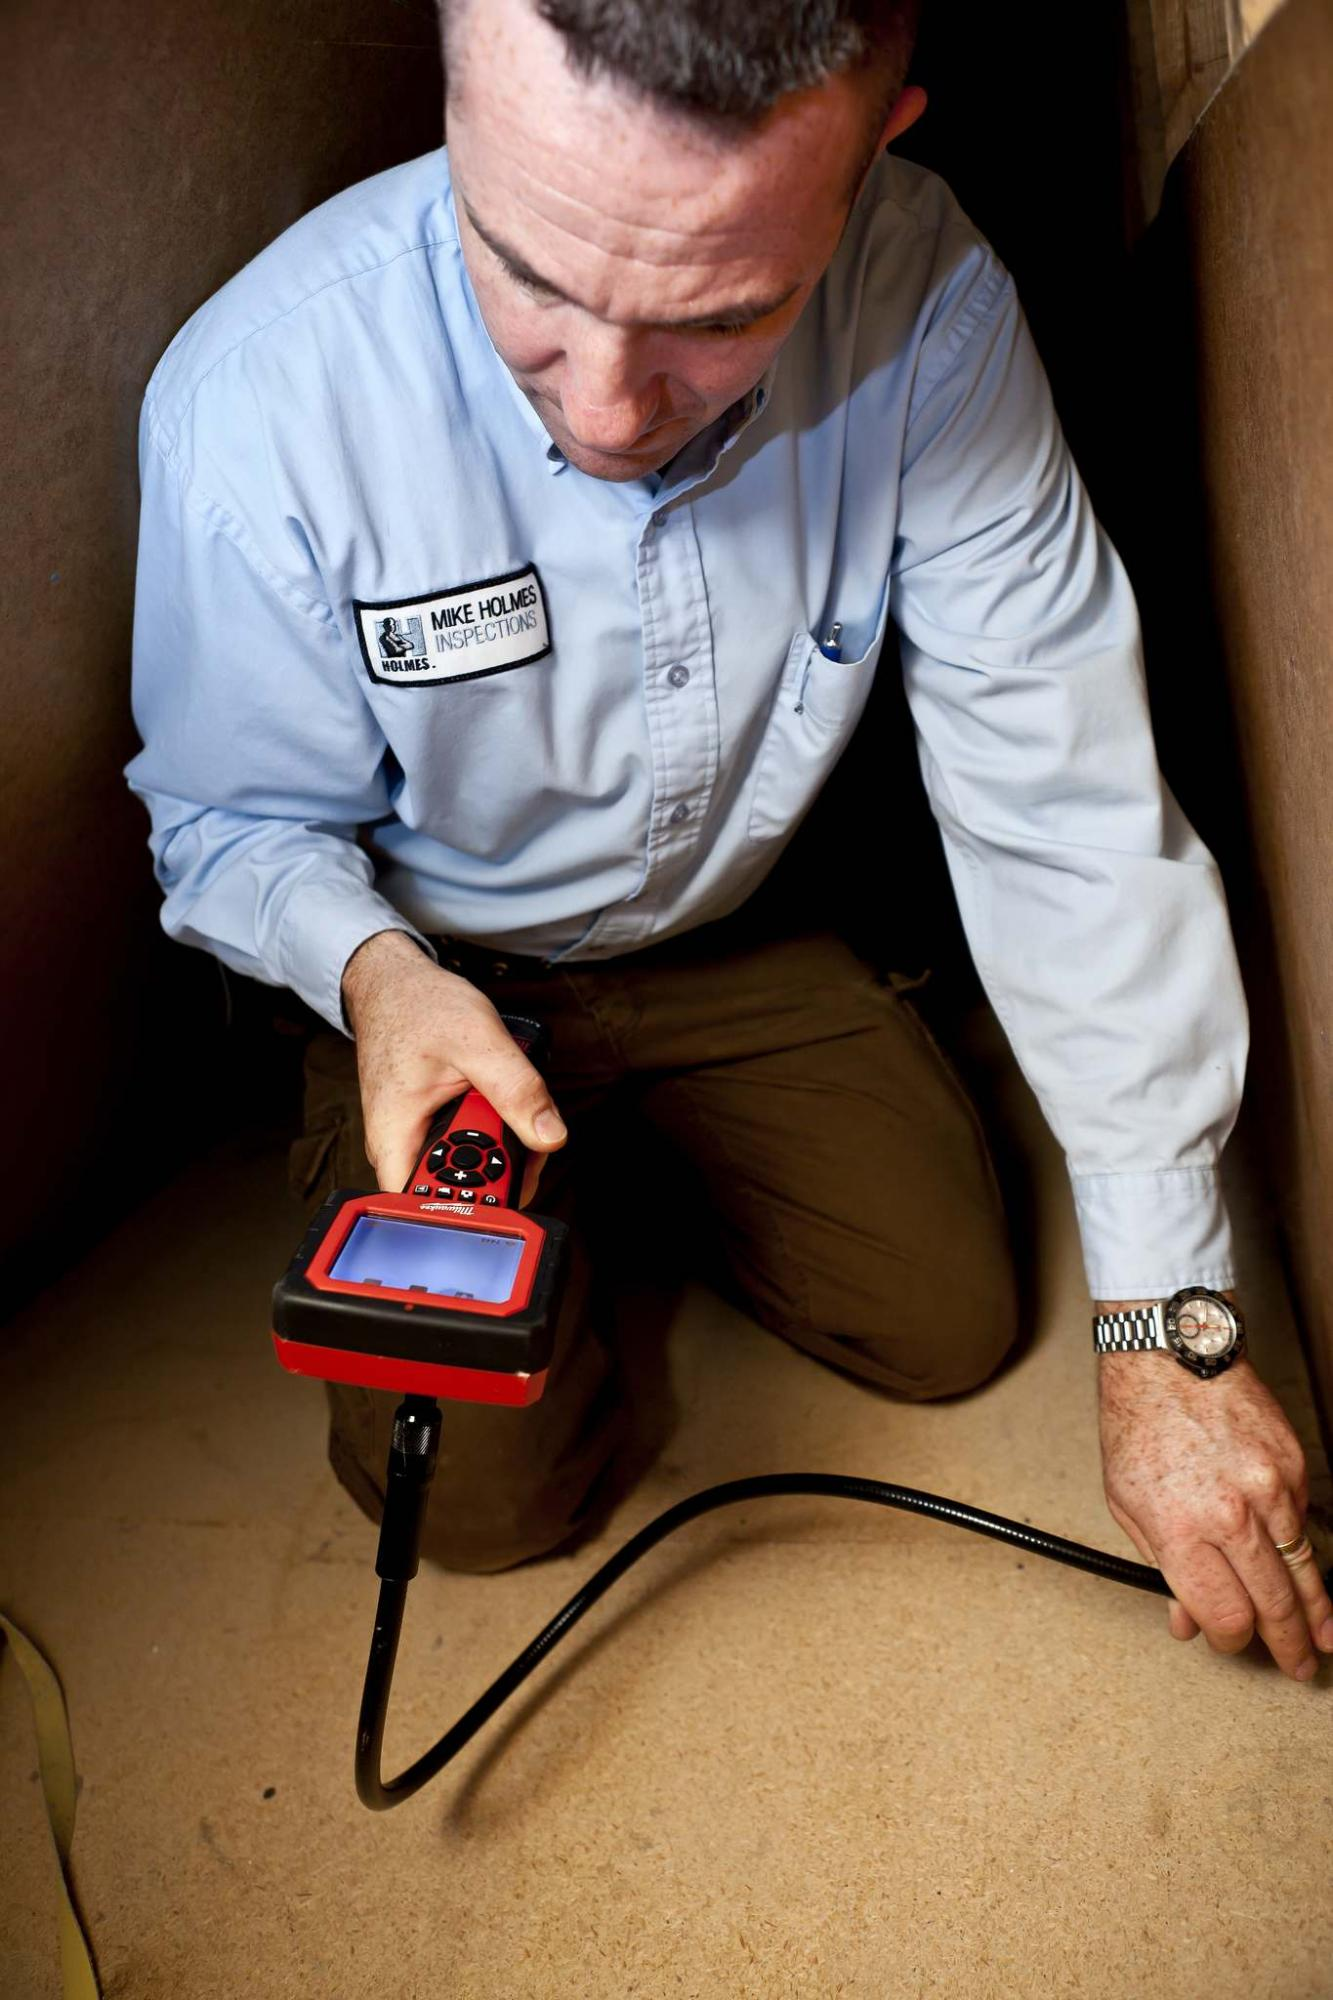 <p>Holmes Group</p><p>A home inspector inspects a crawlspace. Properly insulating and sealing the perimeter and dirt floor of a crawlspace prevents excess moisture.</p>